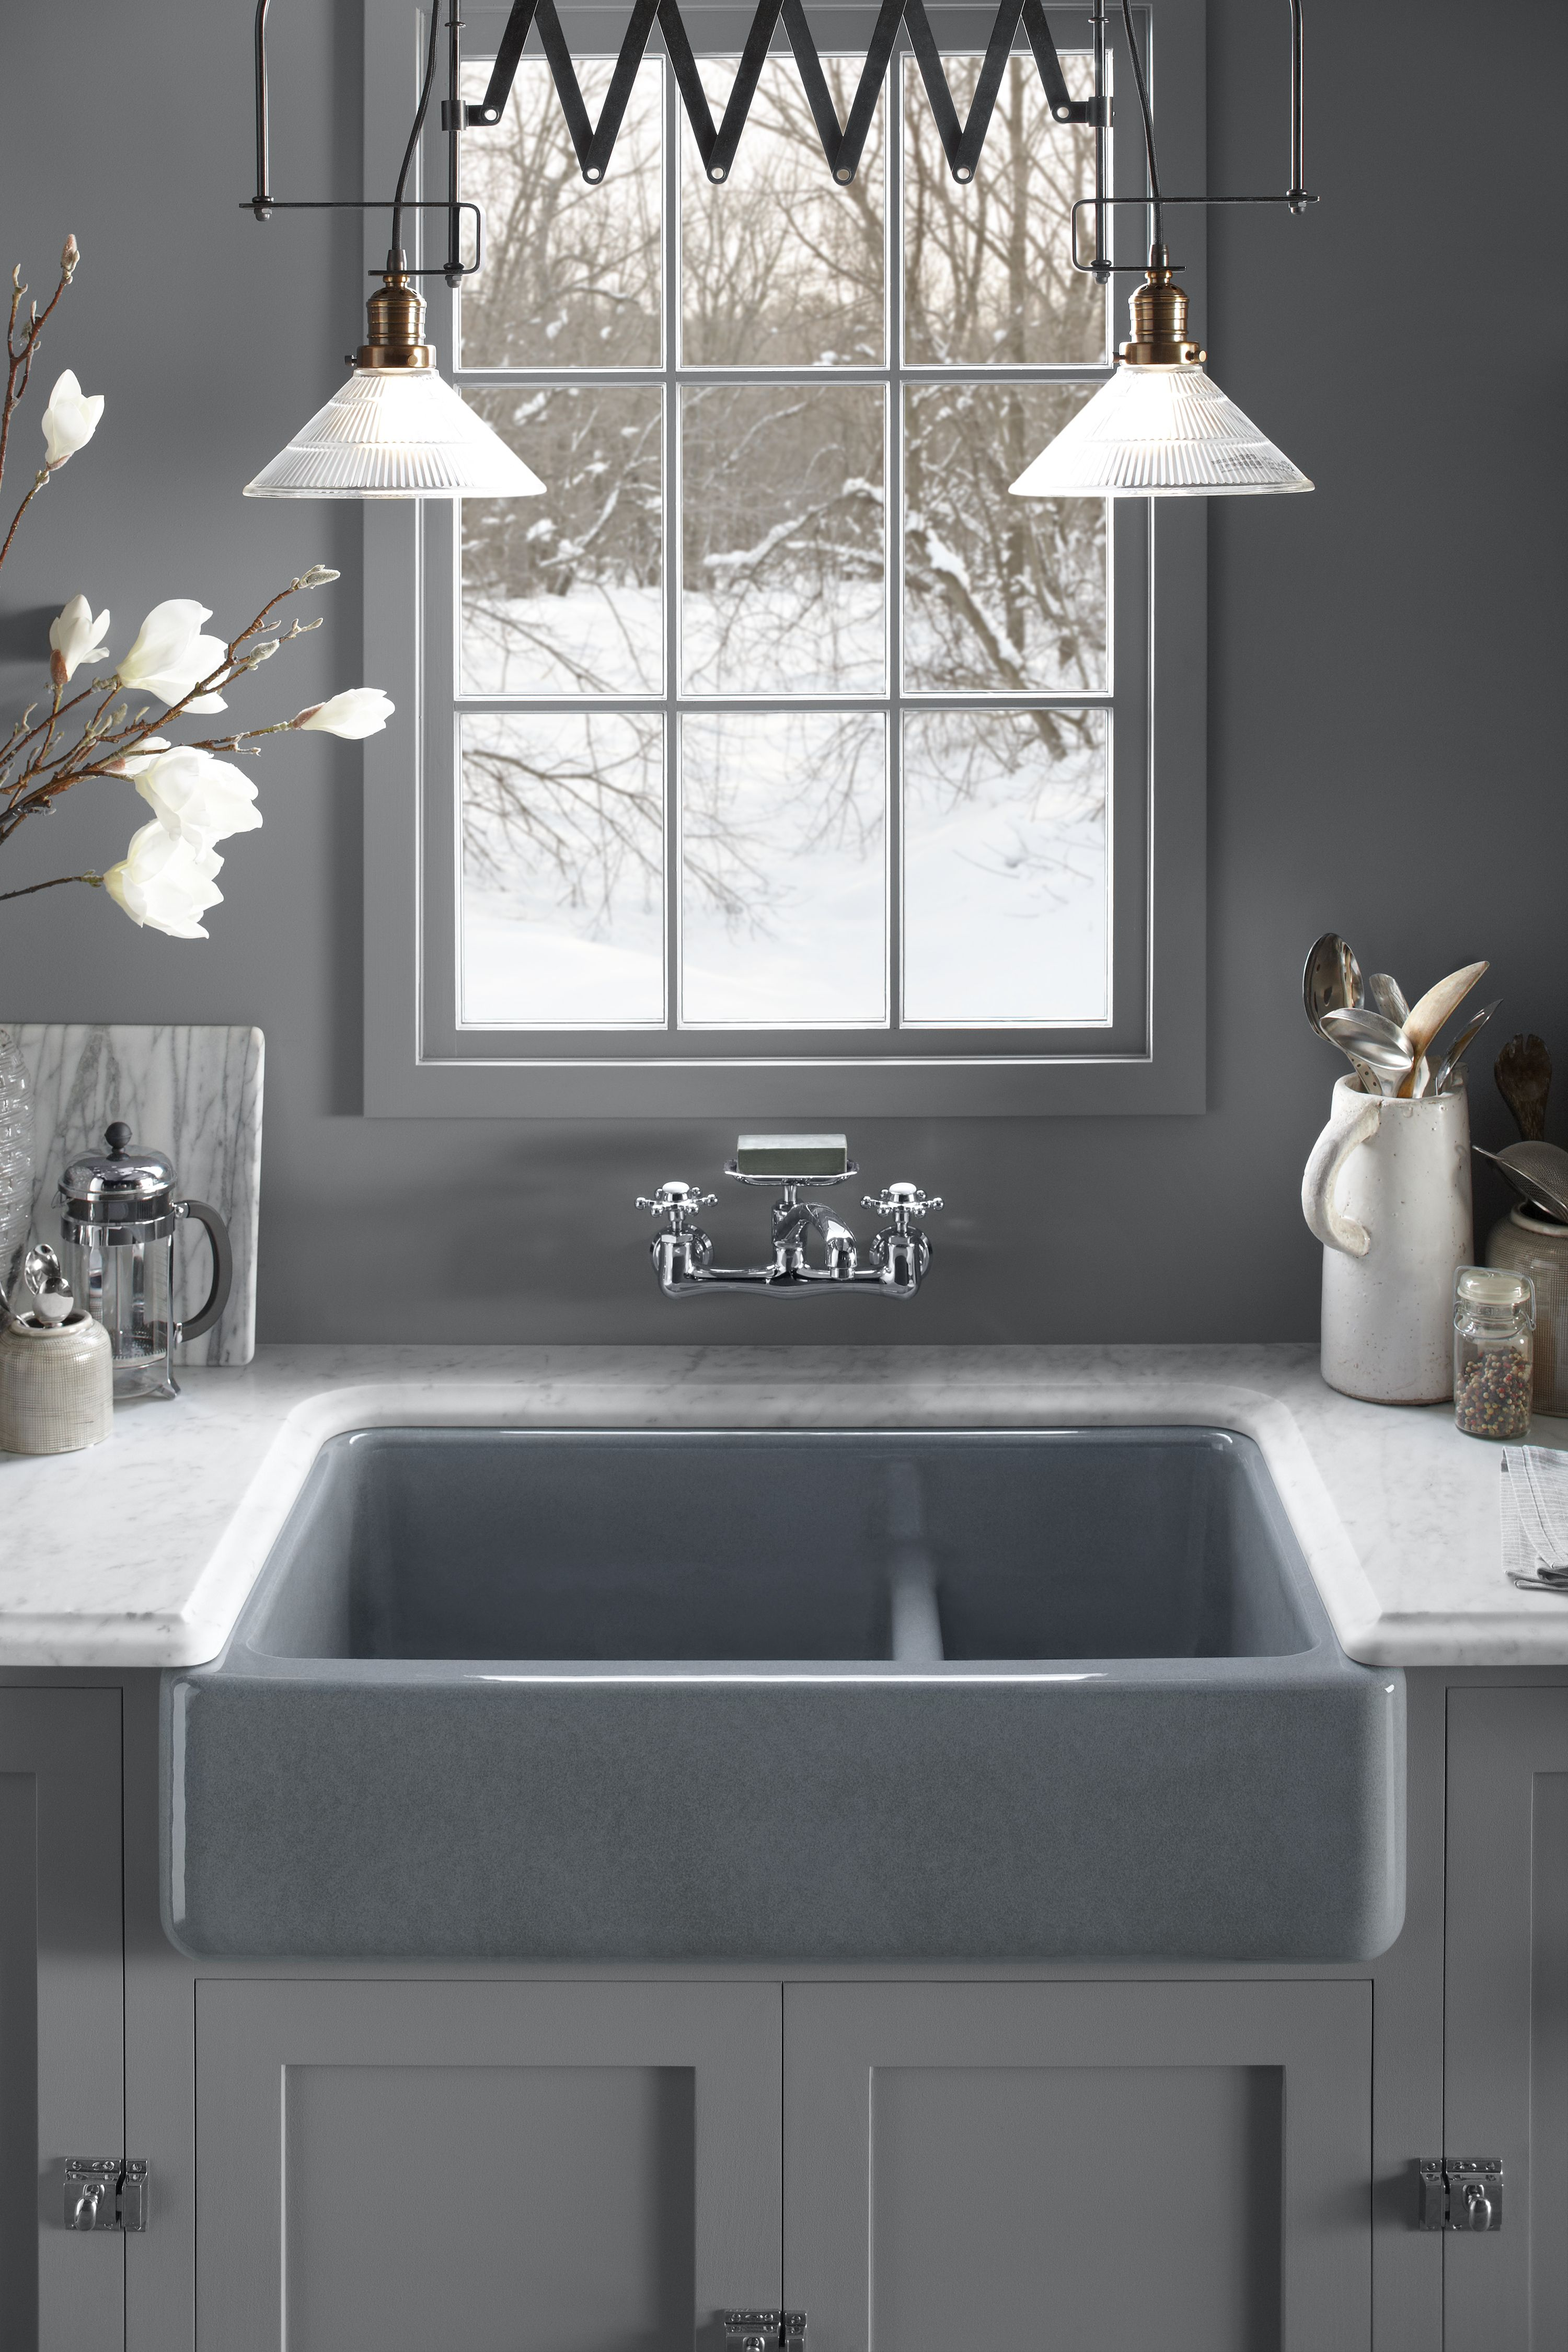 Kohler Whitehaven Farmhouse Sink Accessories Kohler Smart Divide Bowls Make Our Whitehaven Sinks More